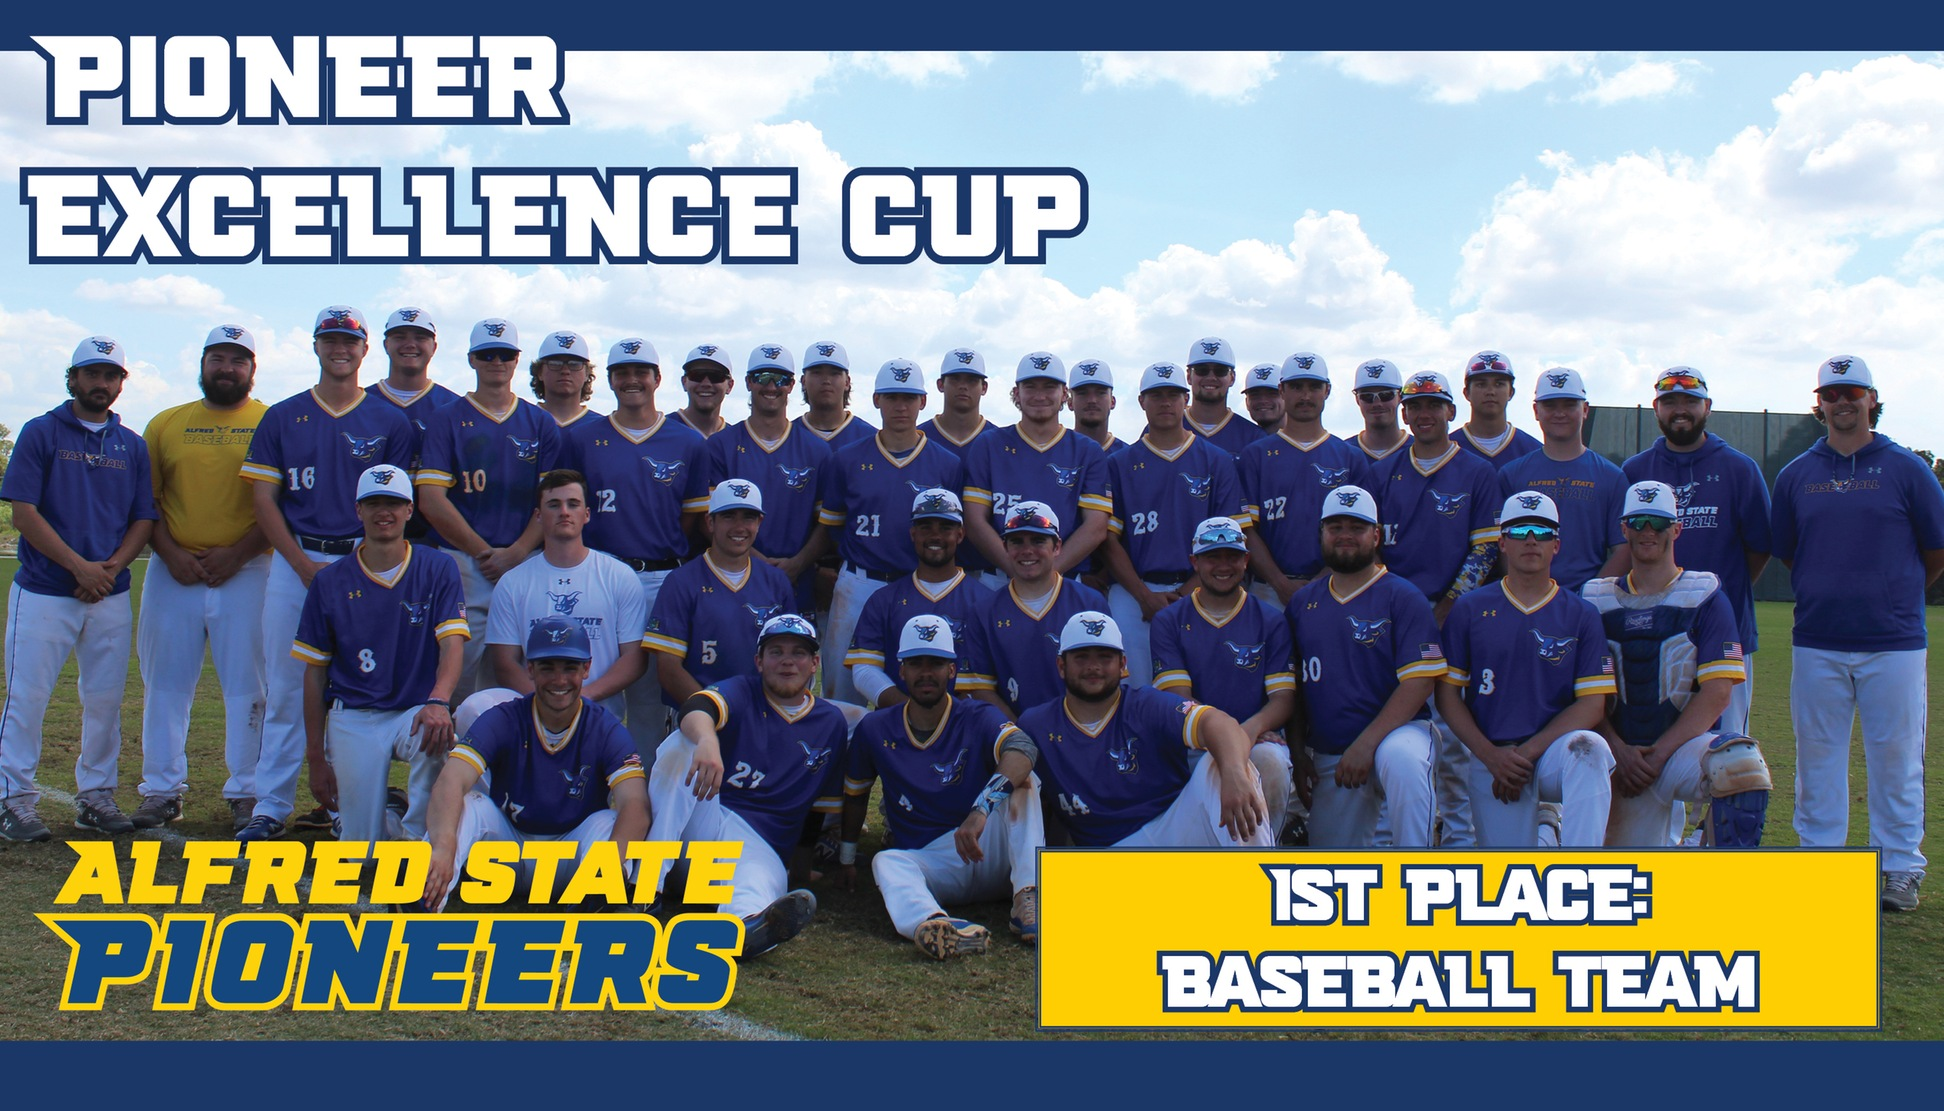 Alfred State baseball team wins the 2019-20 Pioneer Excellence Cup